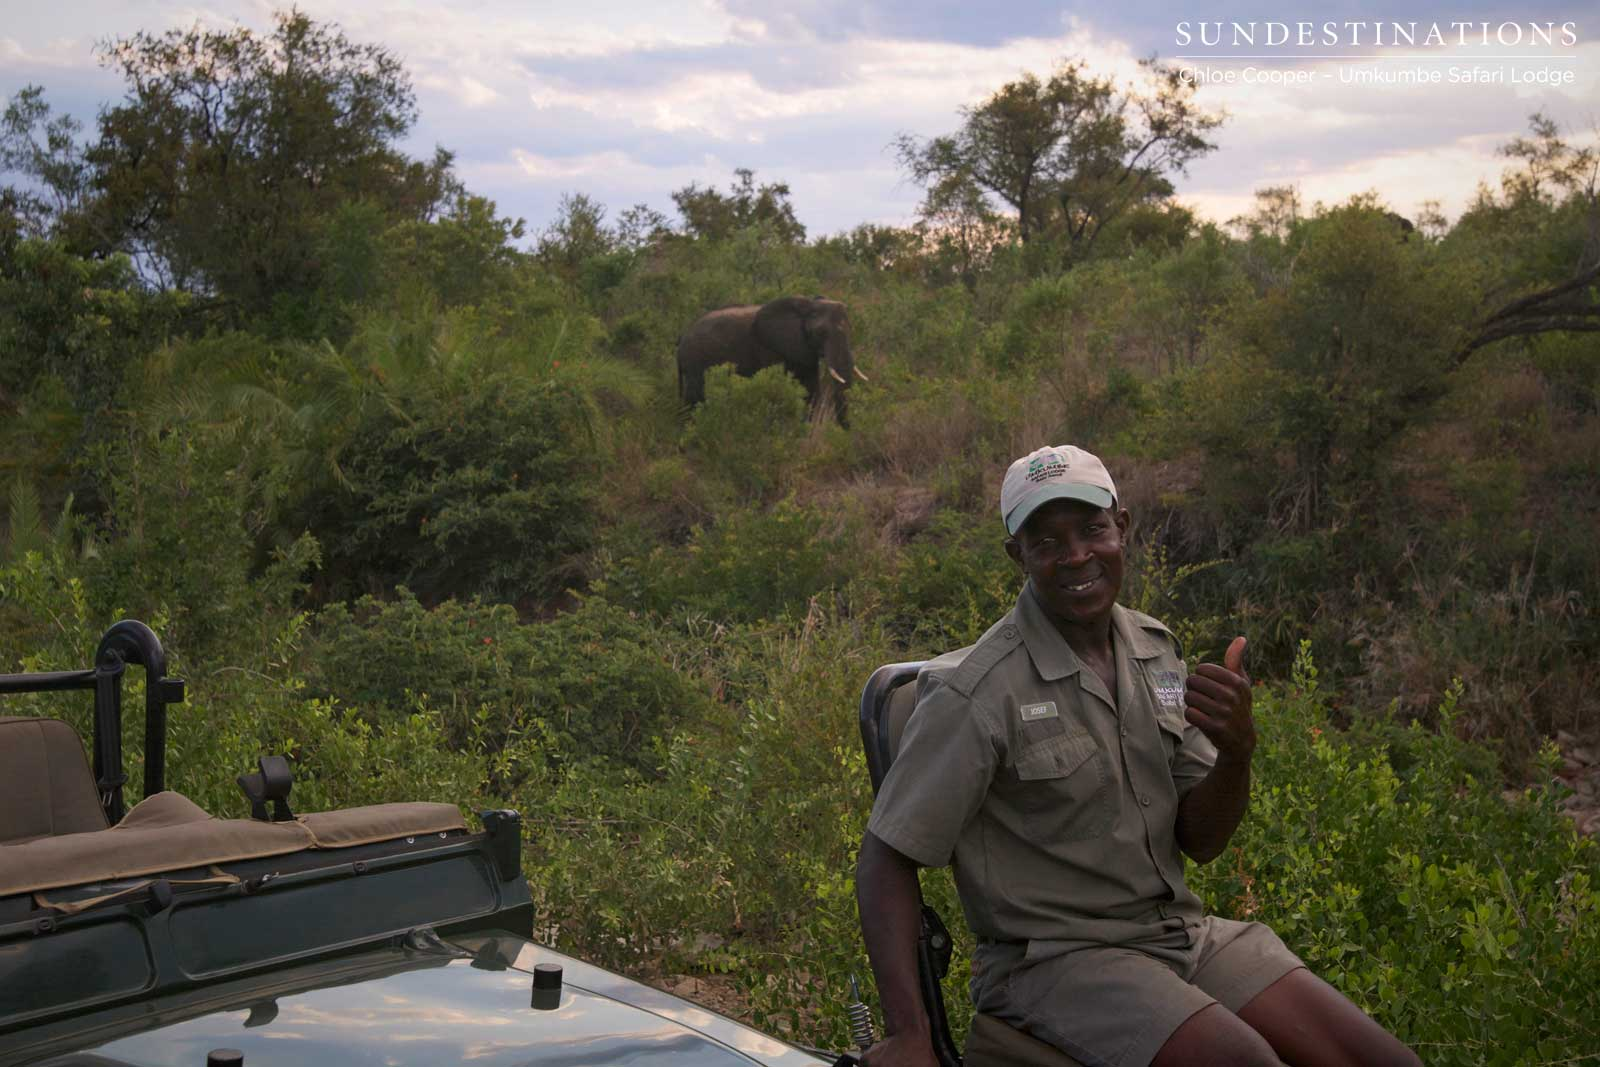 Tracker Josef showing his appreciation for the wonderful elephant sighting with Umkumbe